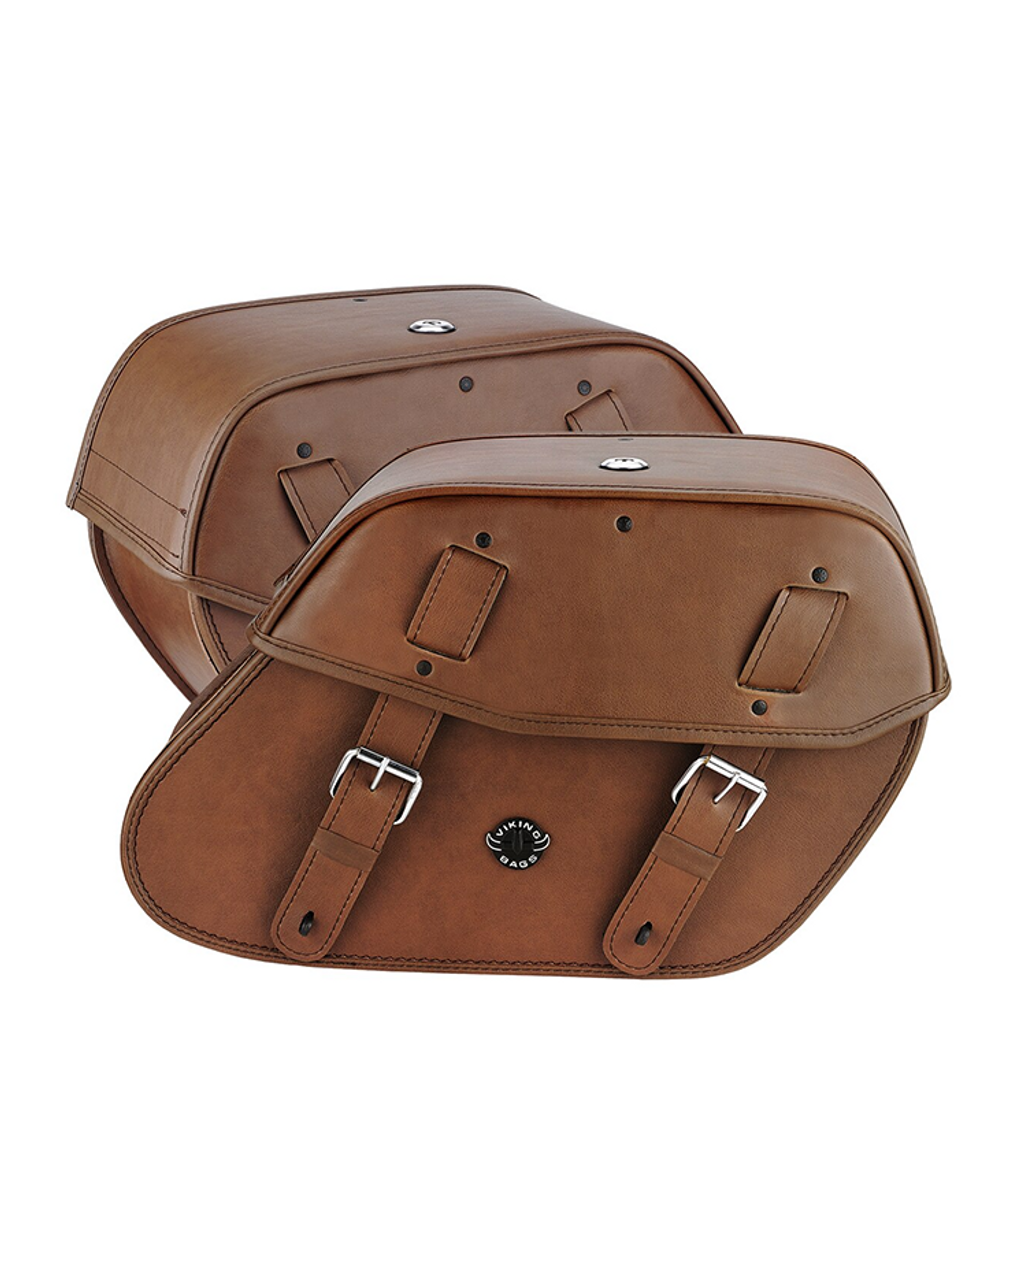 Viking Odin Brown Large Motorcycle Saddlebags For Harley Softail Breakout Both Bags View